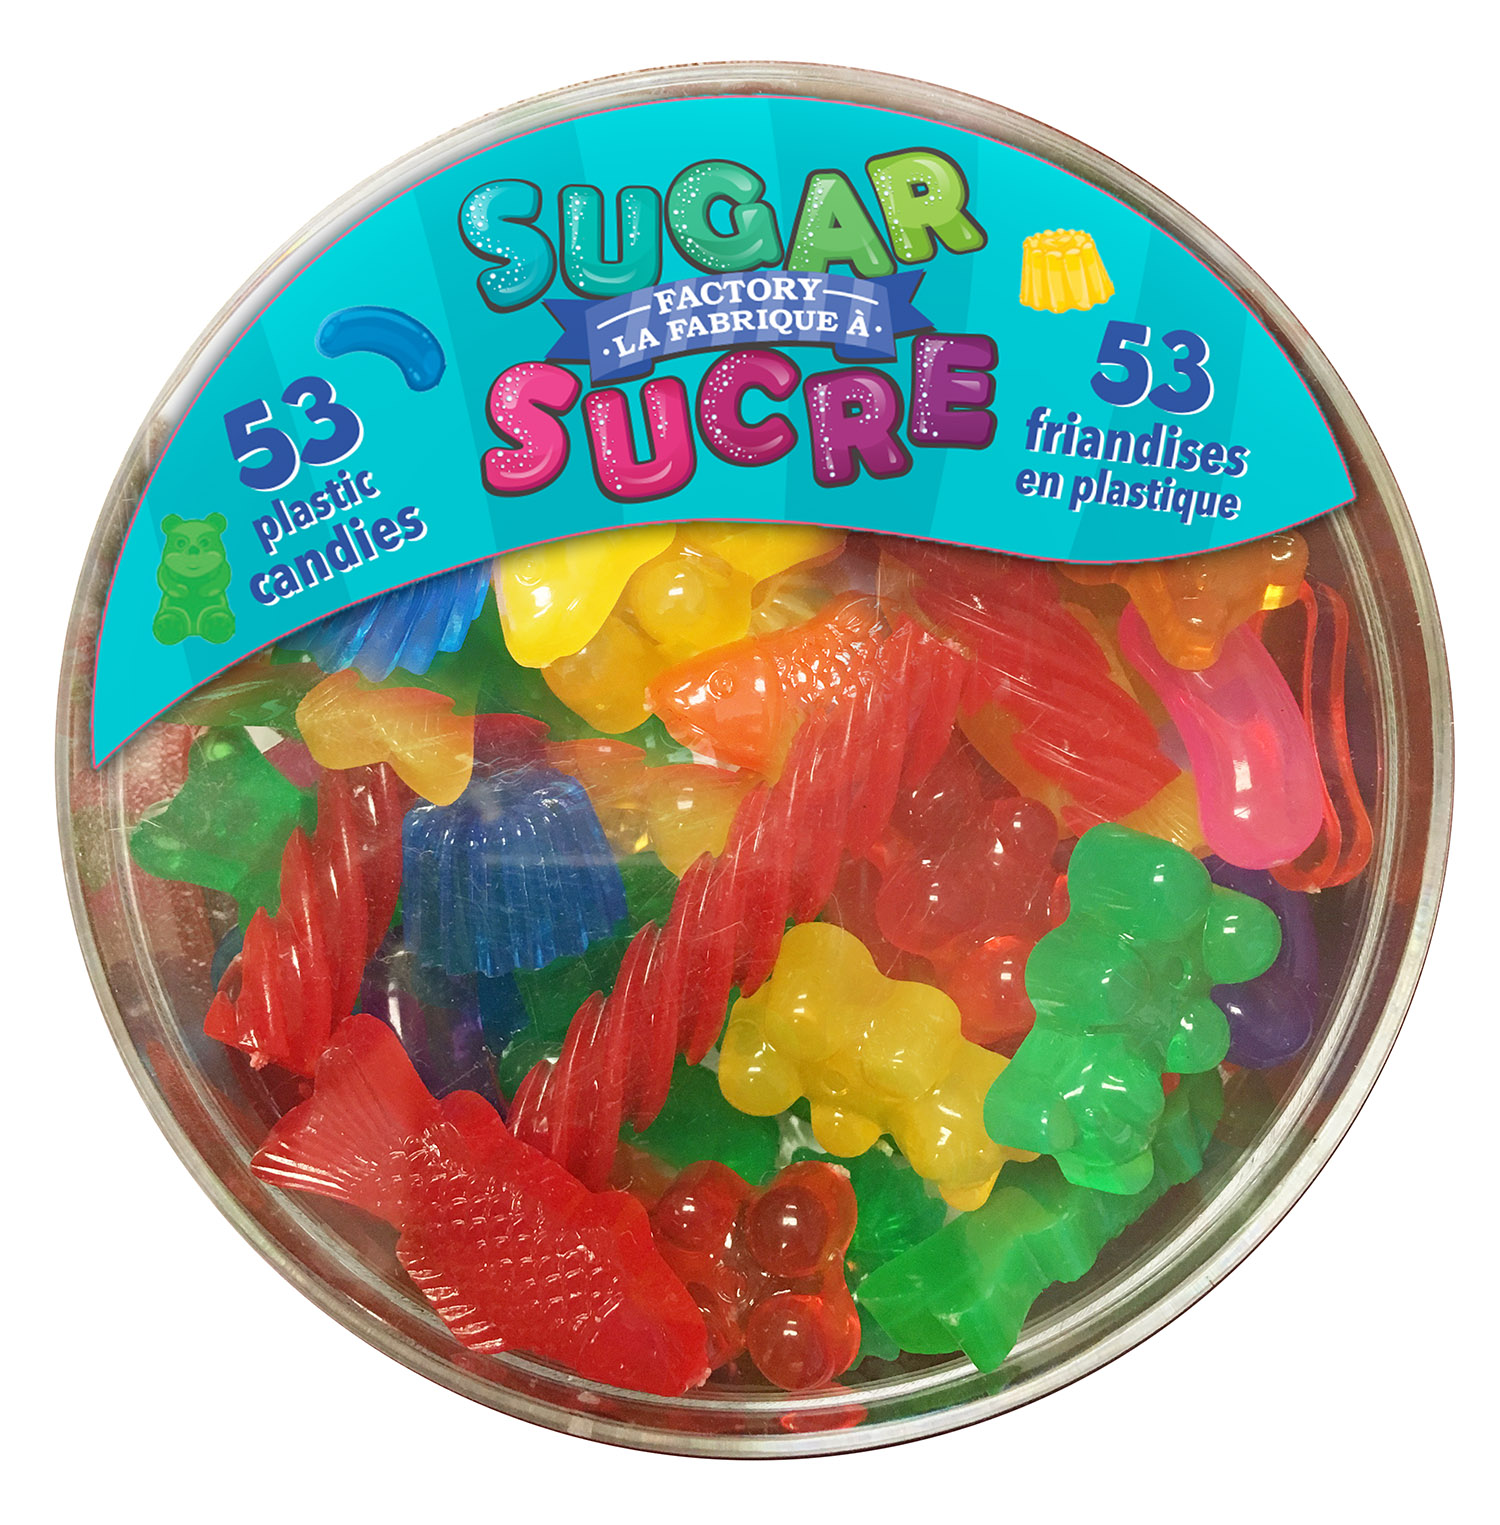 Sugar Factory - Candies